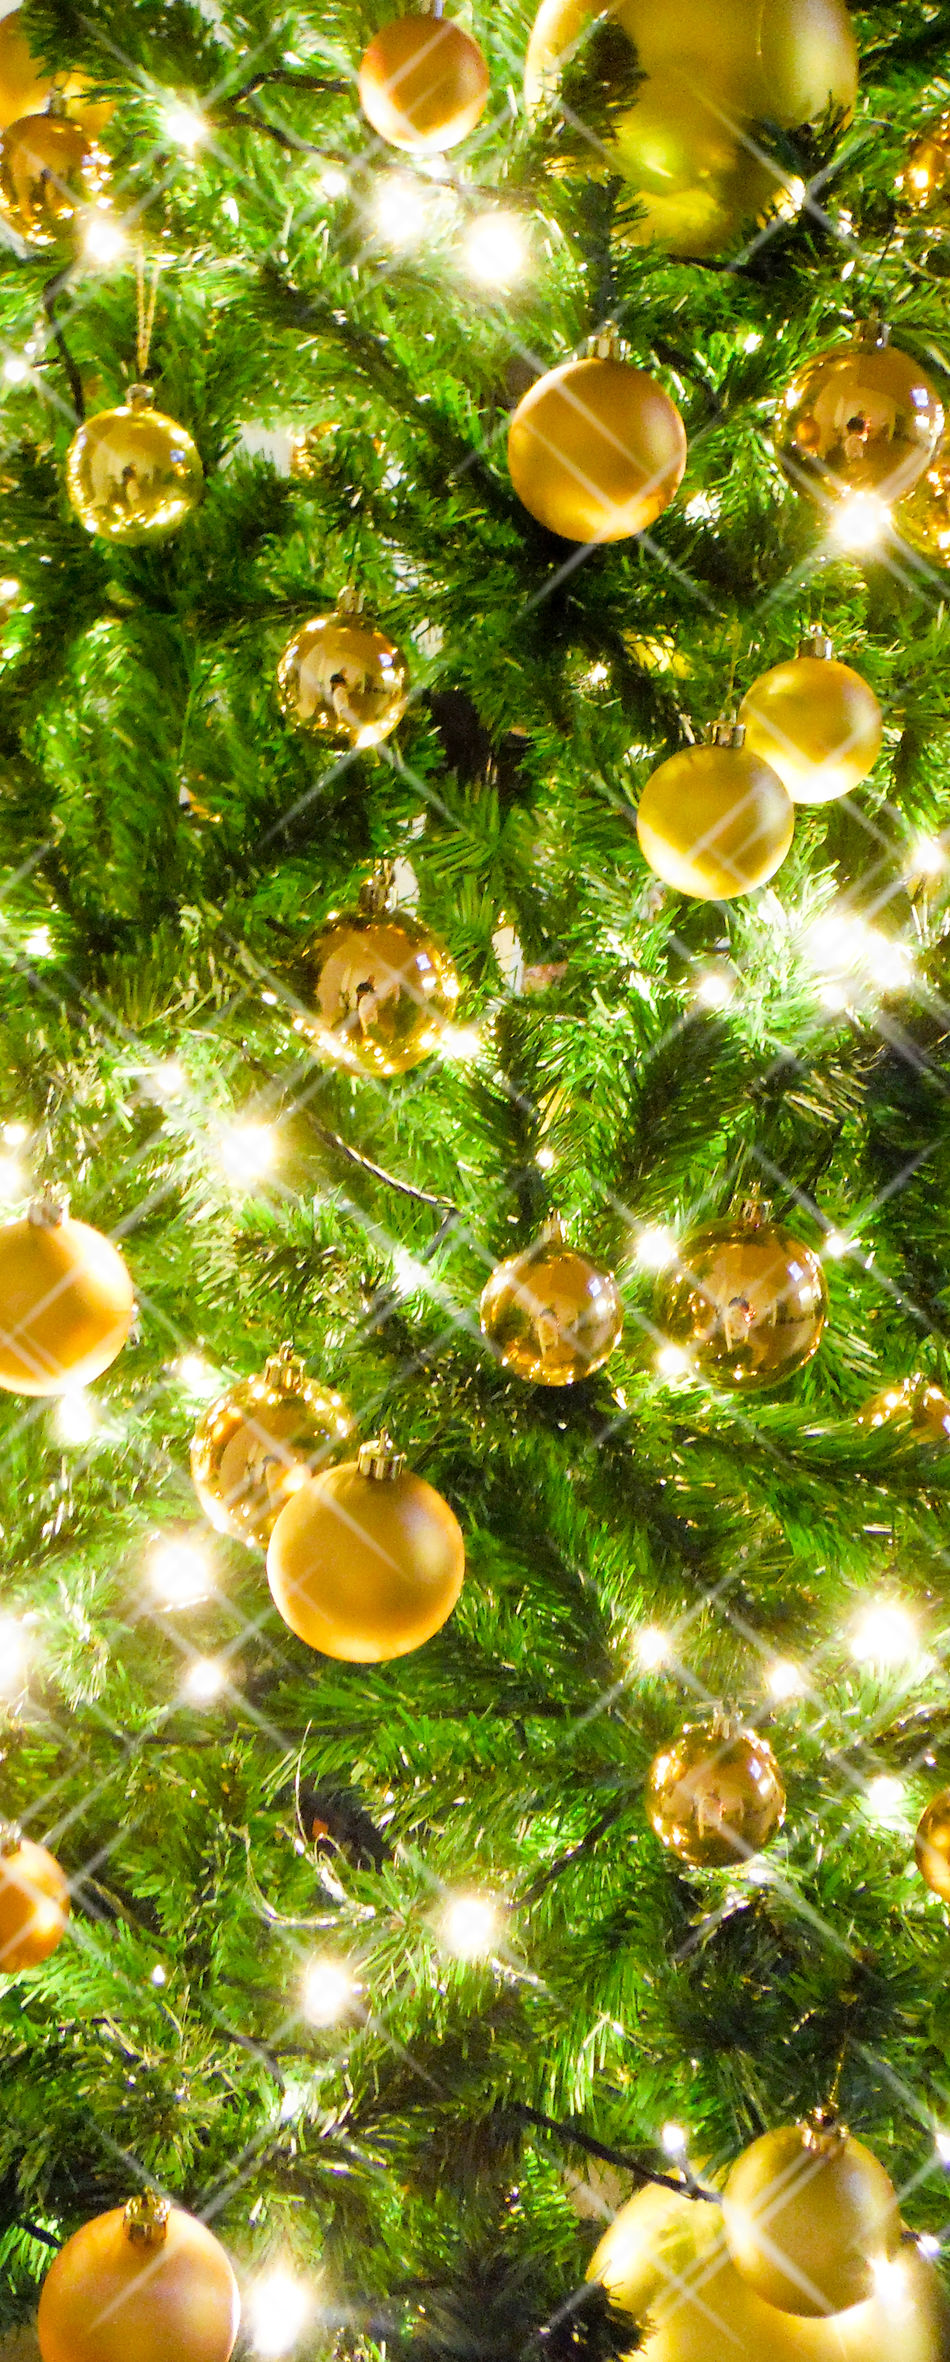 baubles Backgrounds Baubles Christmas Christmas Ornament Close-up Day Full Frame Golden Illuminated No People Xmas Tree